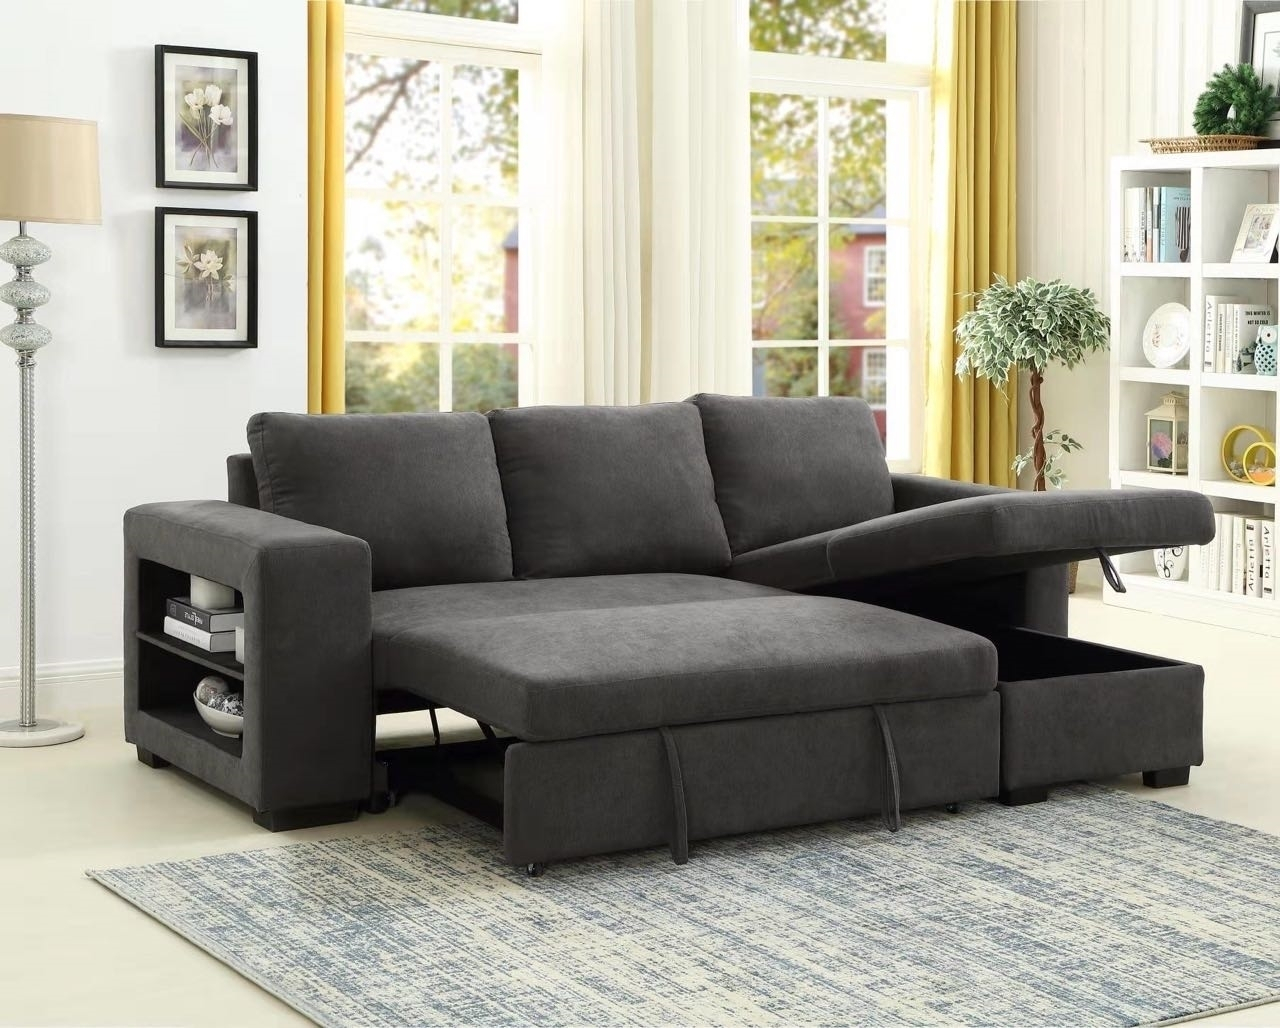 Lucena Reversible Sectional Sofa/Sofa Bed With Storage For Hartford Storage Sectional Futon Sofas (View 10 of 15)